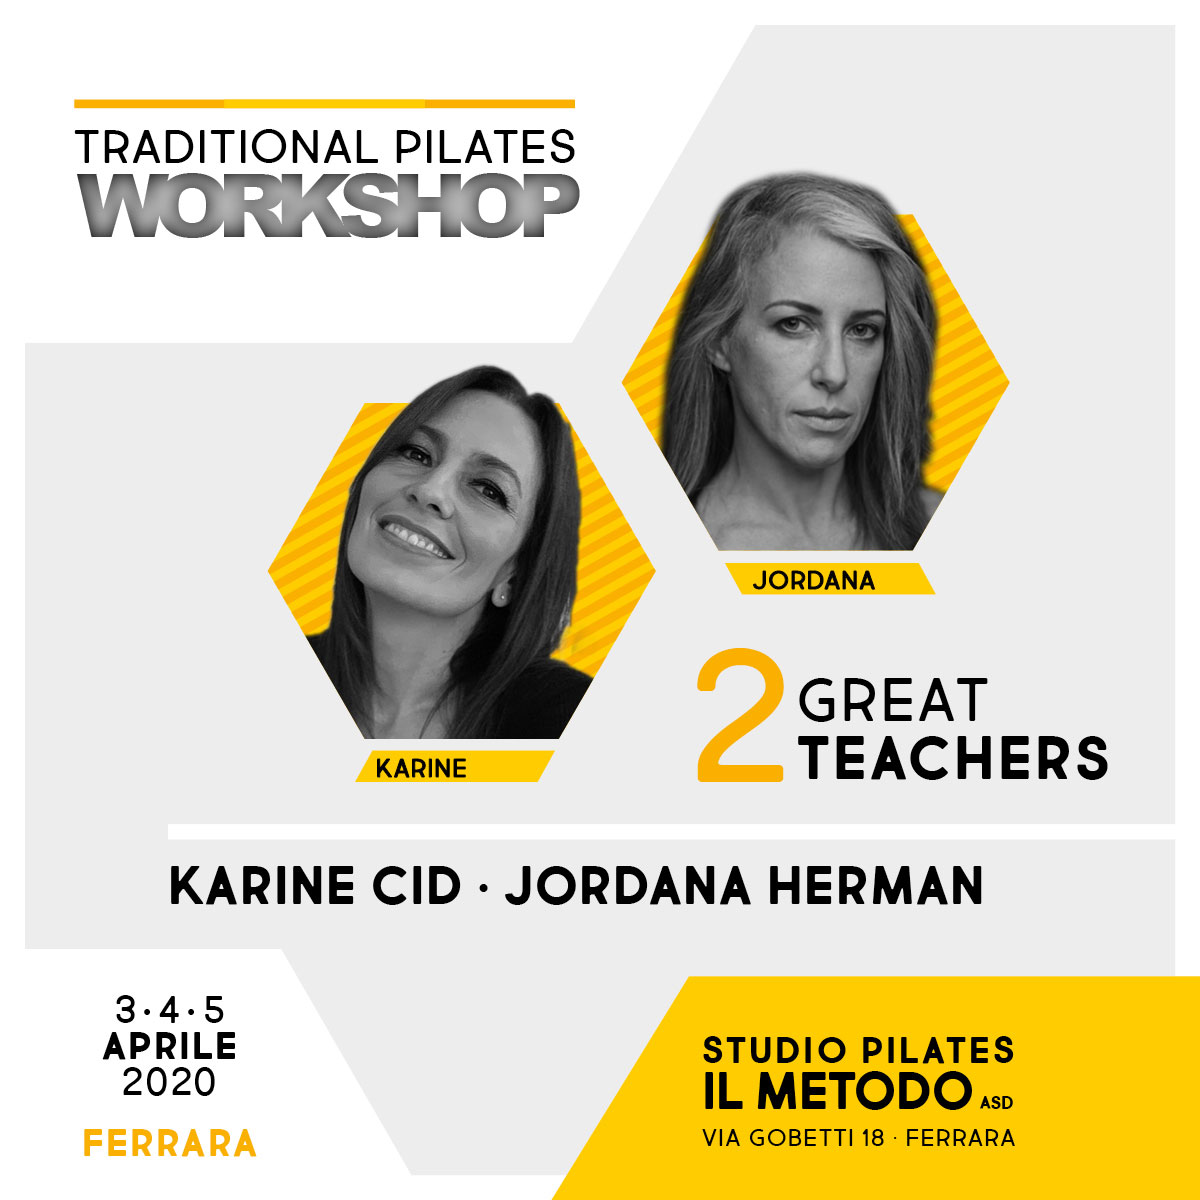 Traditional Pilates Workshop dal 03 al 05 Aprile 2020 a Ferrara con Karine Cid e Jordana Herman